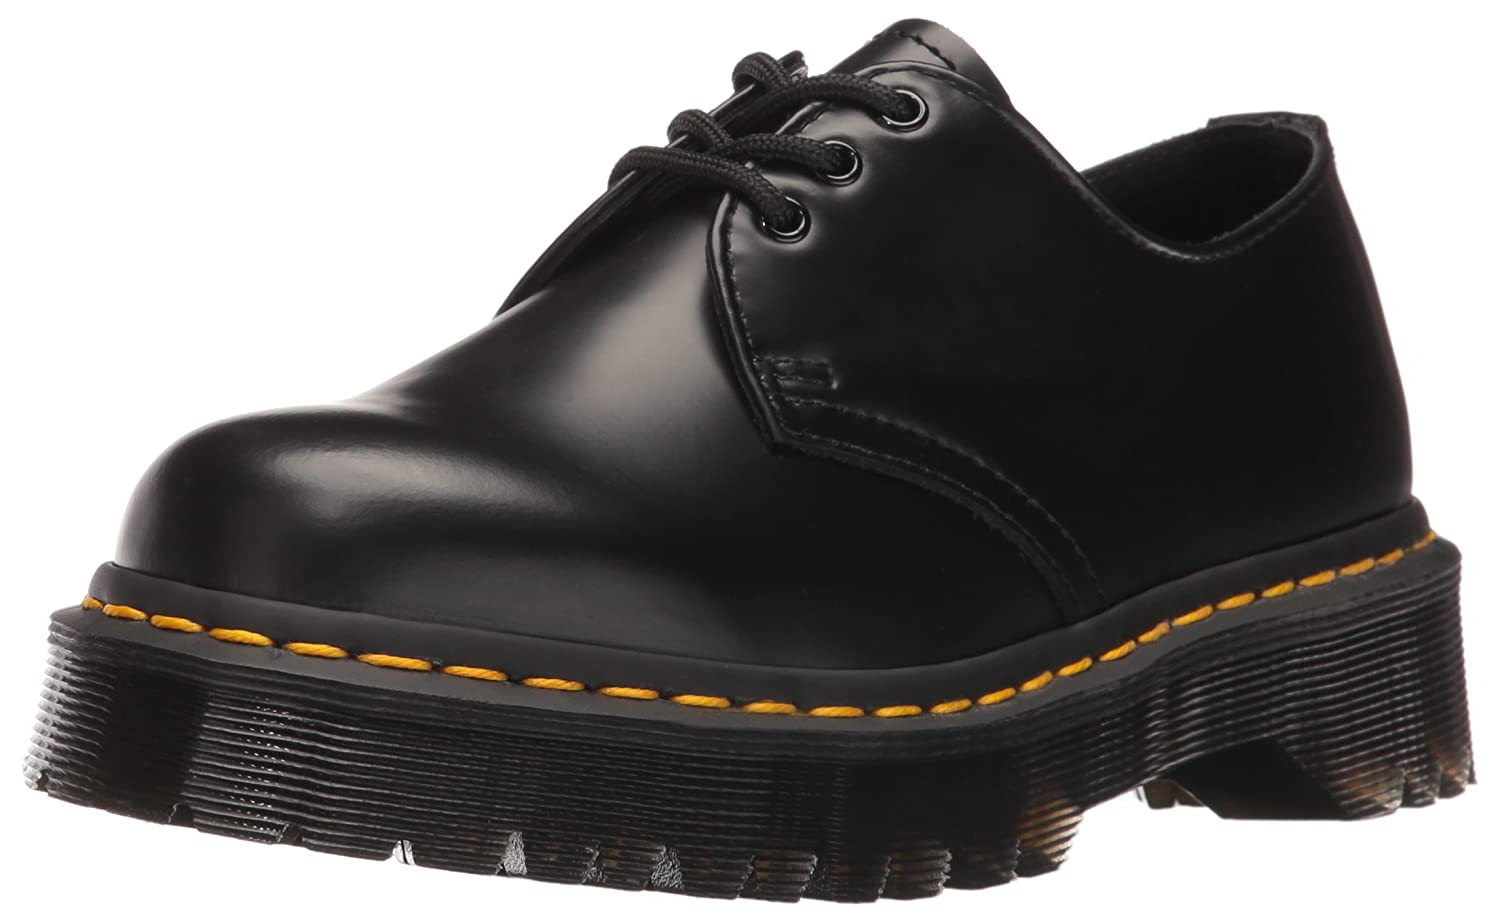 Dr. Martens 1461 Bex Smooth - Zapatos Unisex Adulto